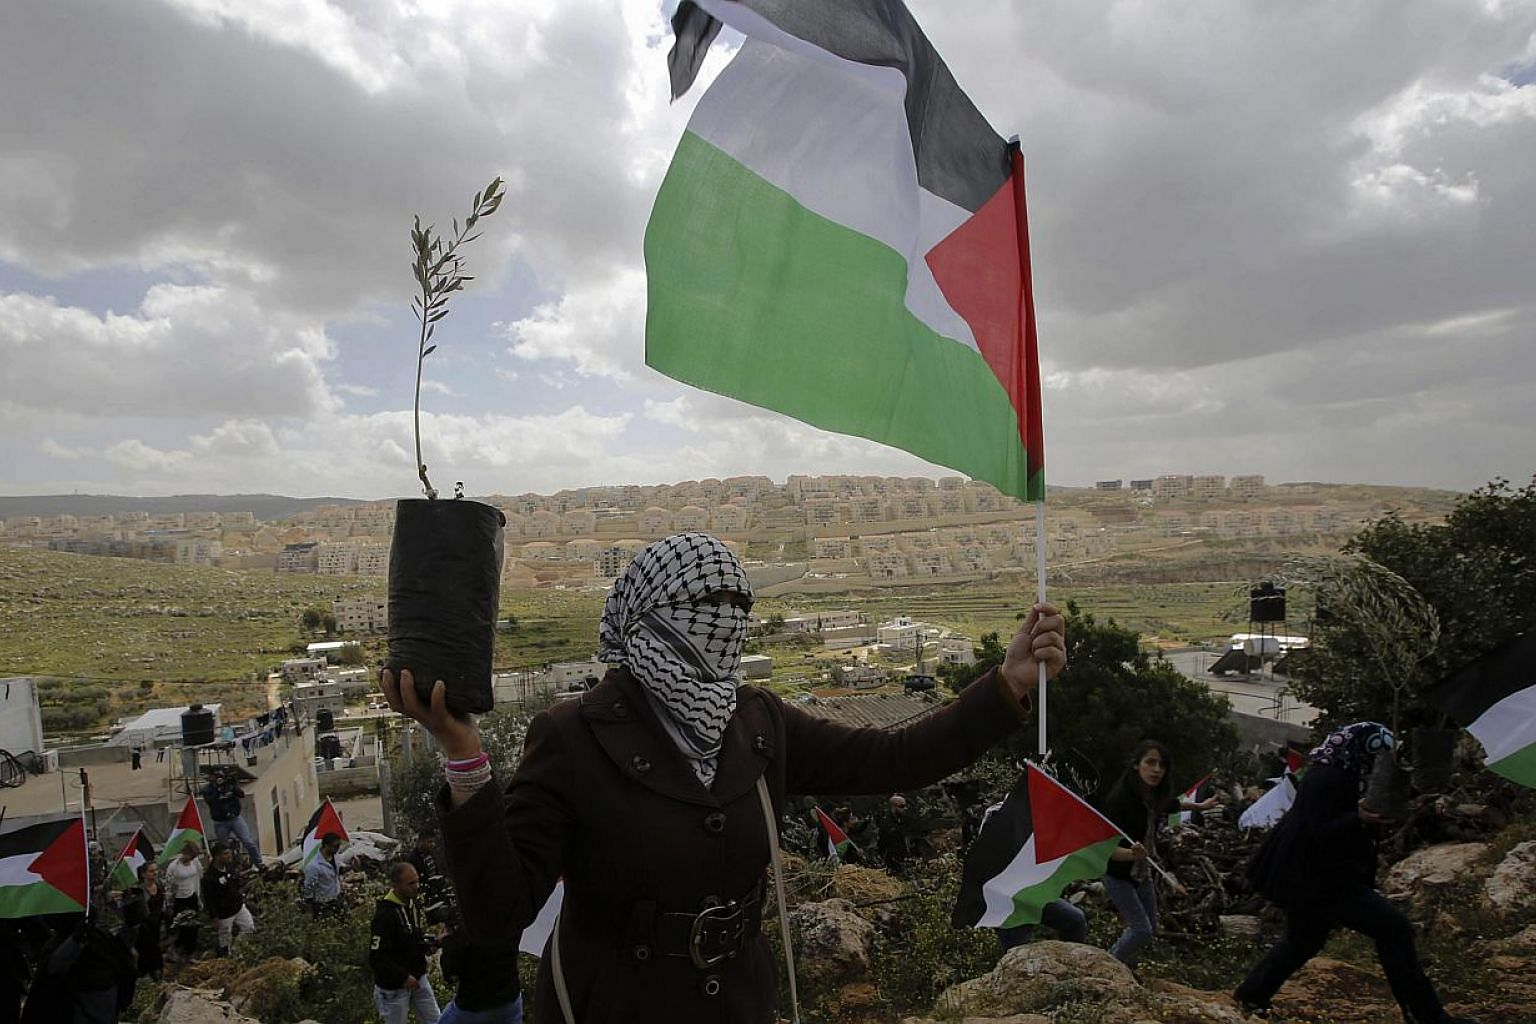 Palestinian protesters from the village of Wadi Fukin carry olive trees and Palestinian flags as they mark the anniversary of Land Day near the Israeli settlement of Beitar Illit on March 30, 2015. Palestine formally joined the International Cri